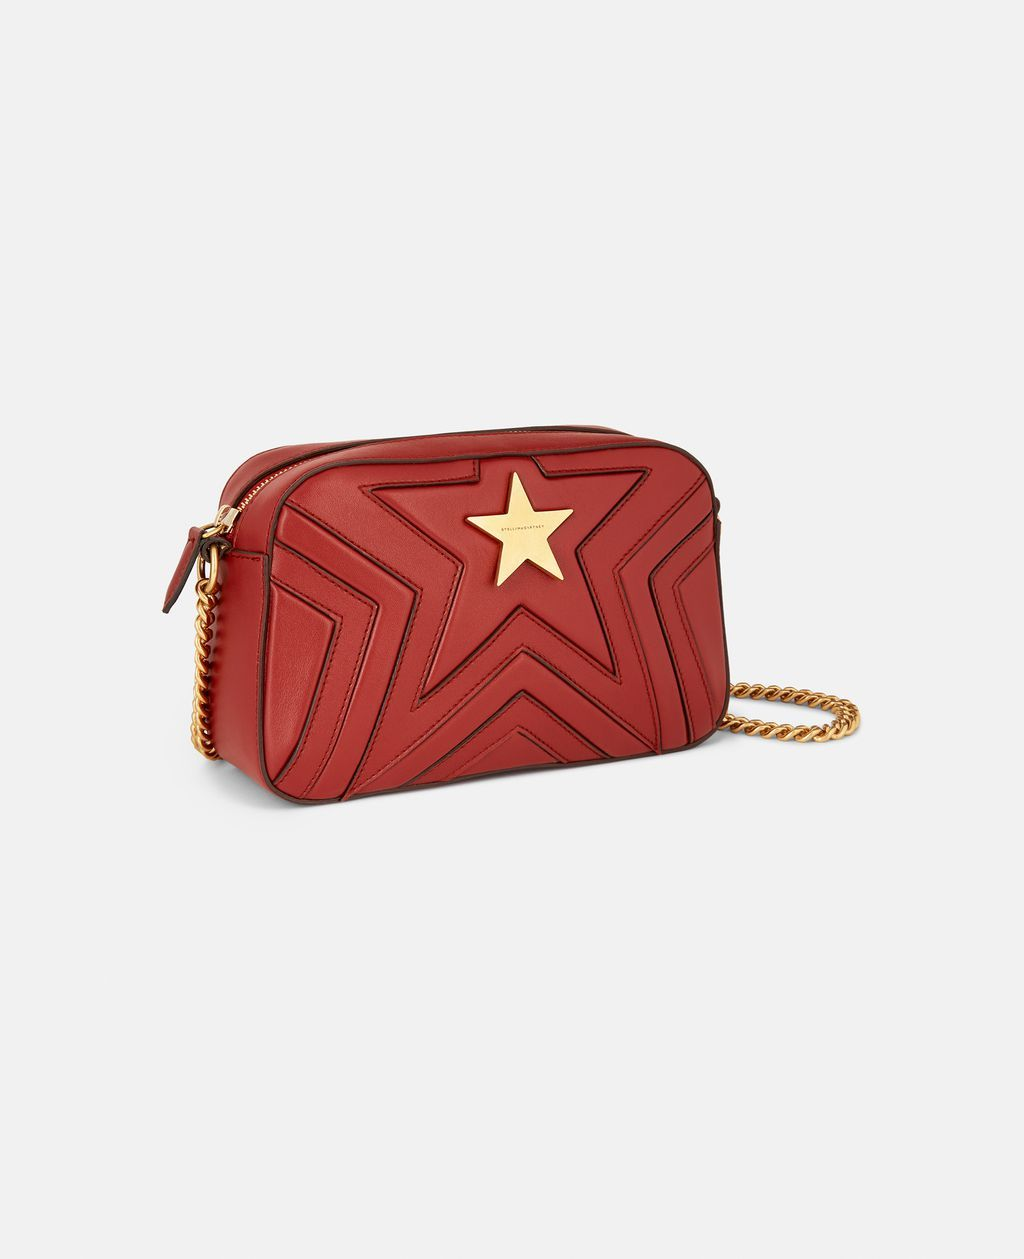 d39ee3dfc7 Stella Star Small Shoulder Bag - STELLA MCCARTNEY